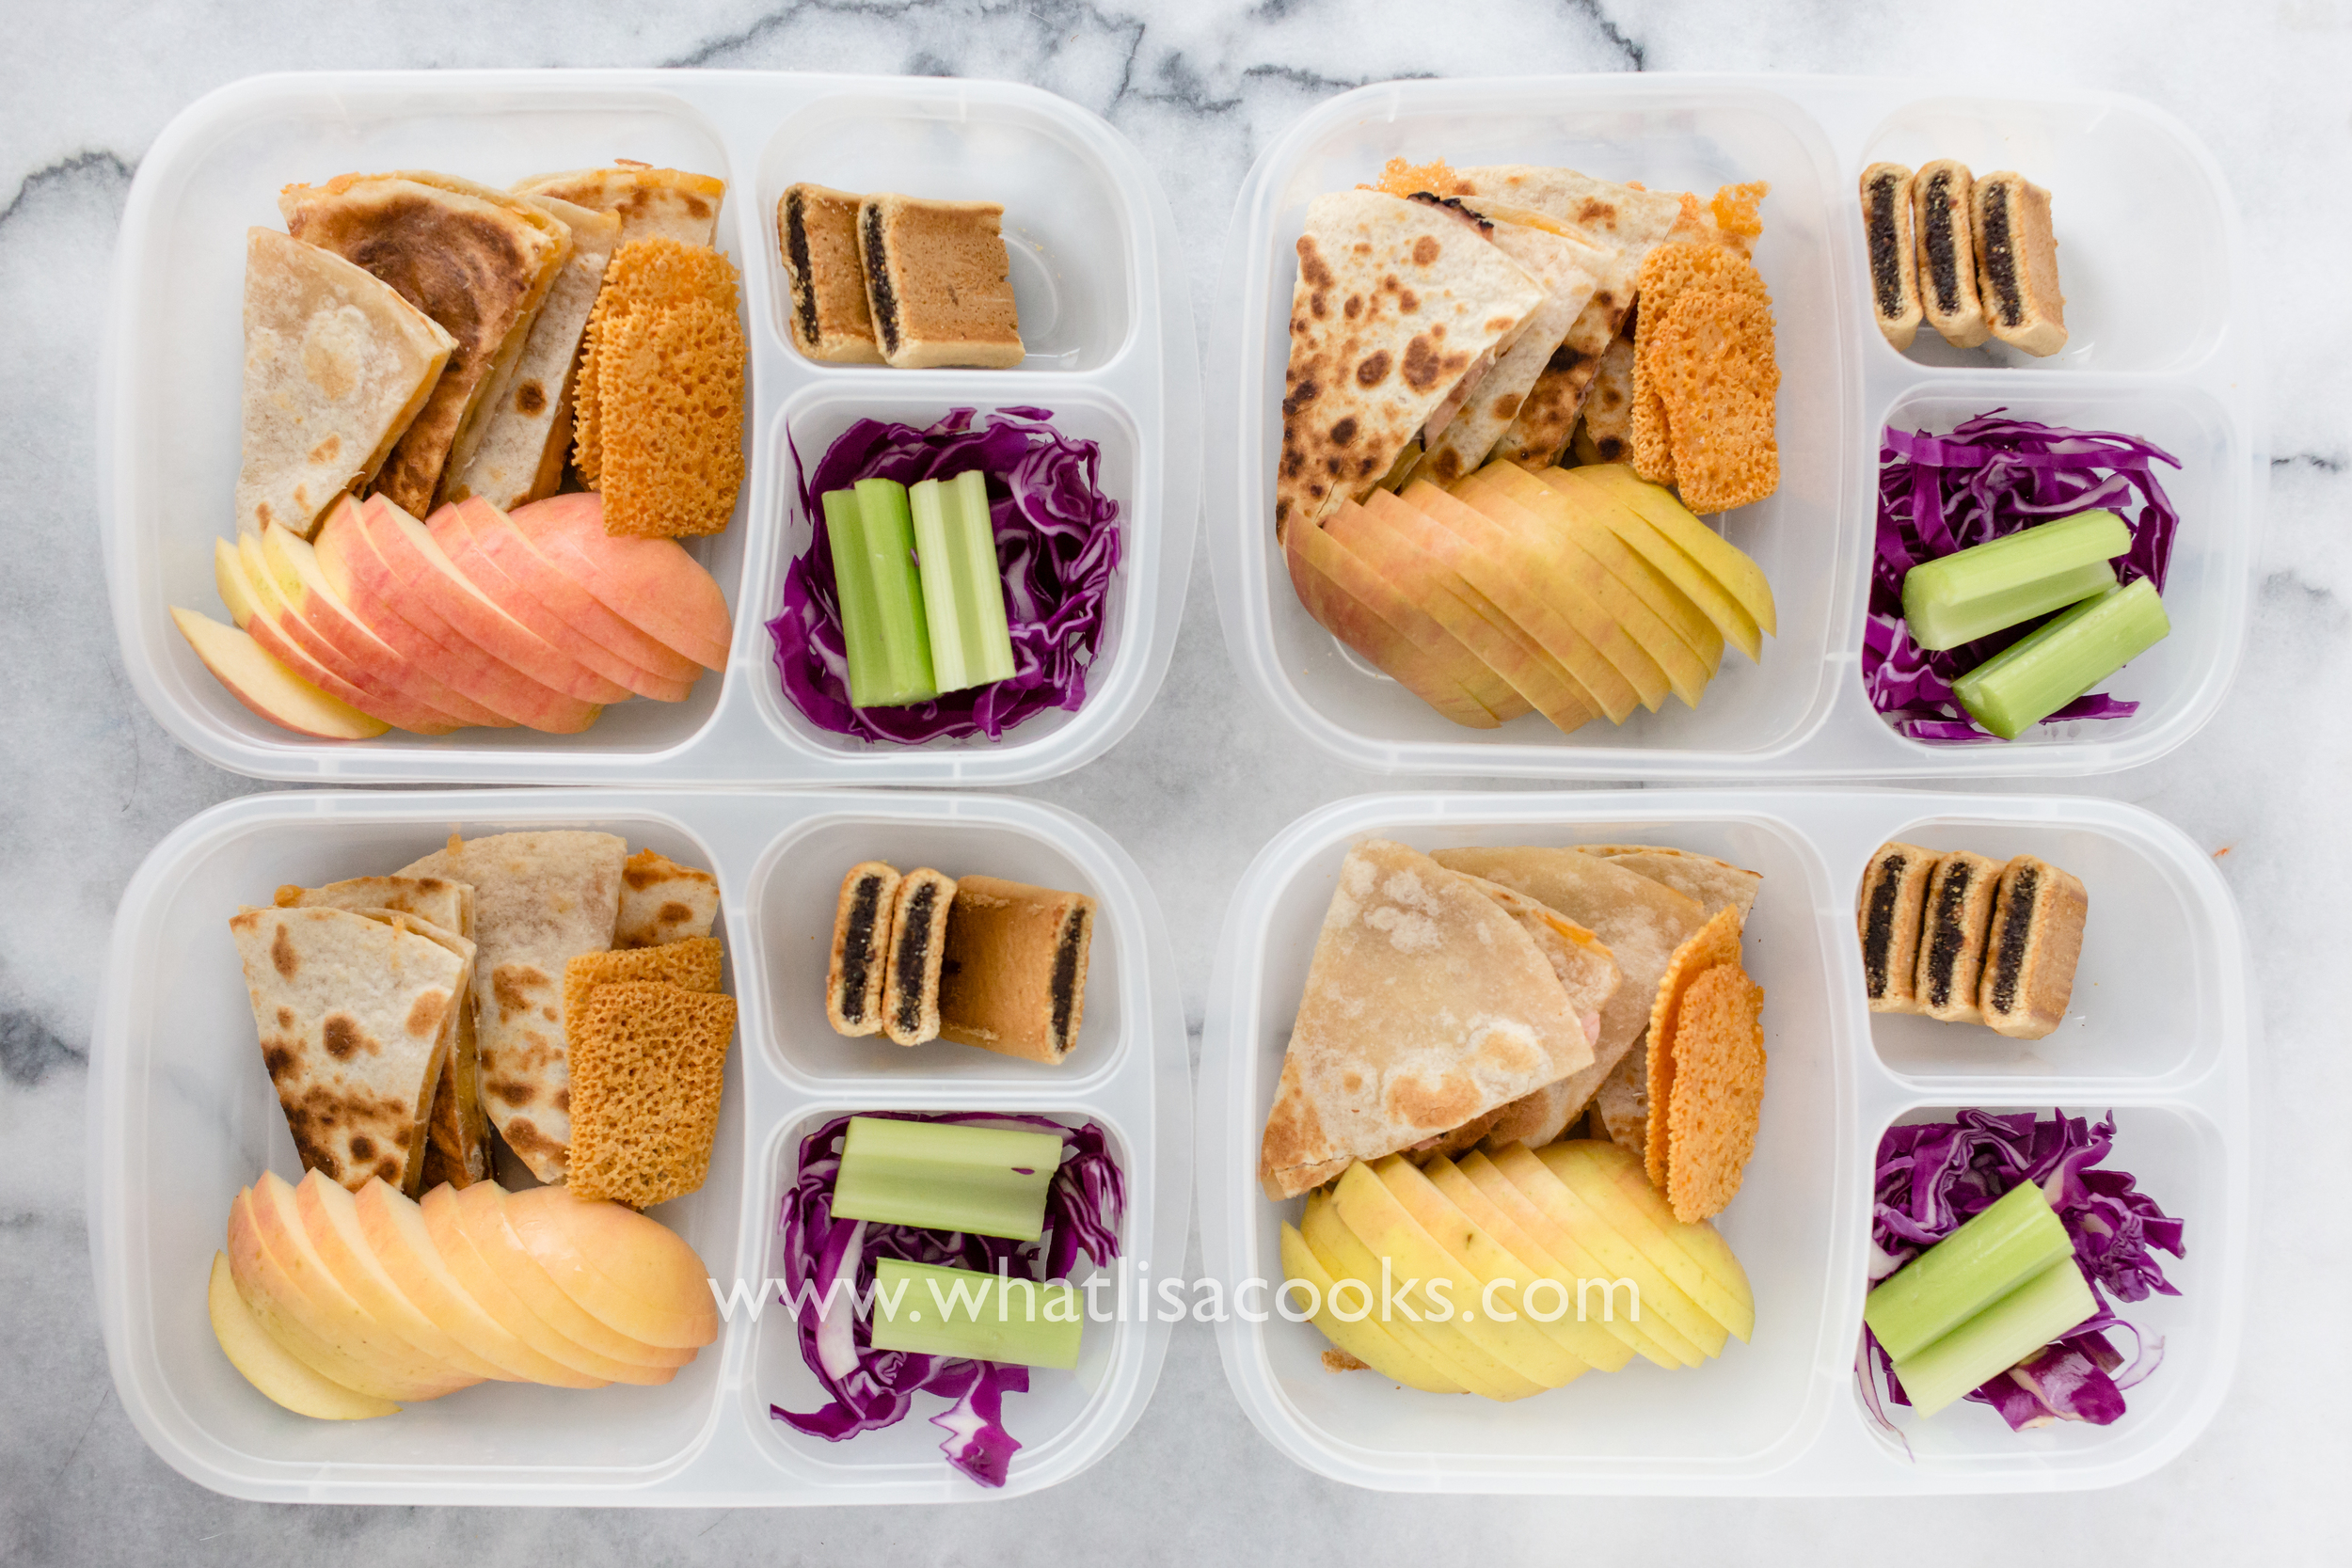 Easy school lunch from whatlisacooks.com